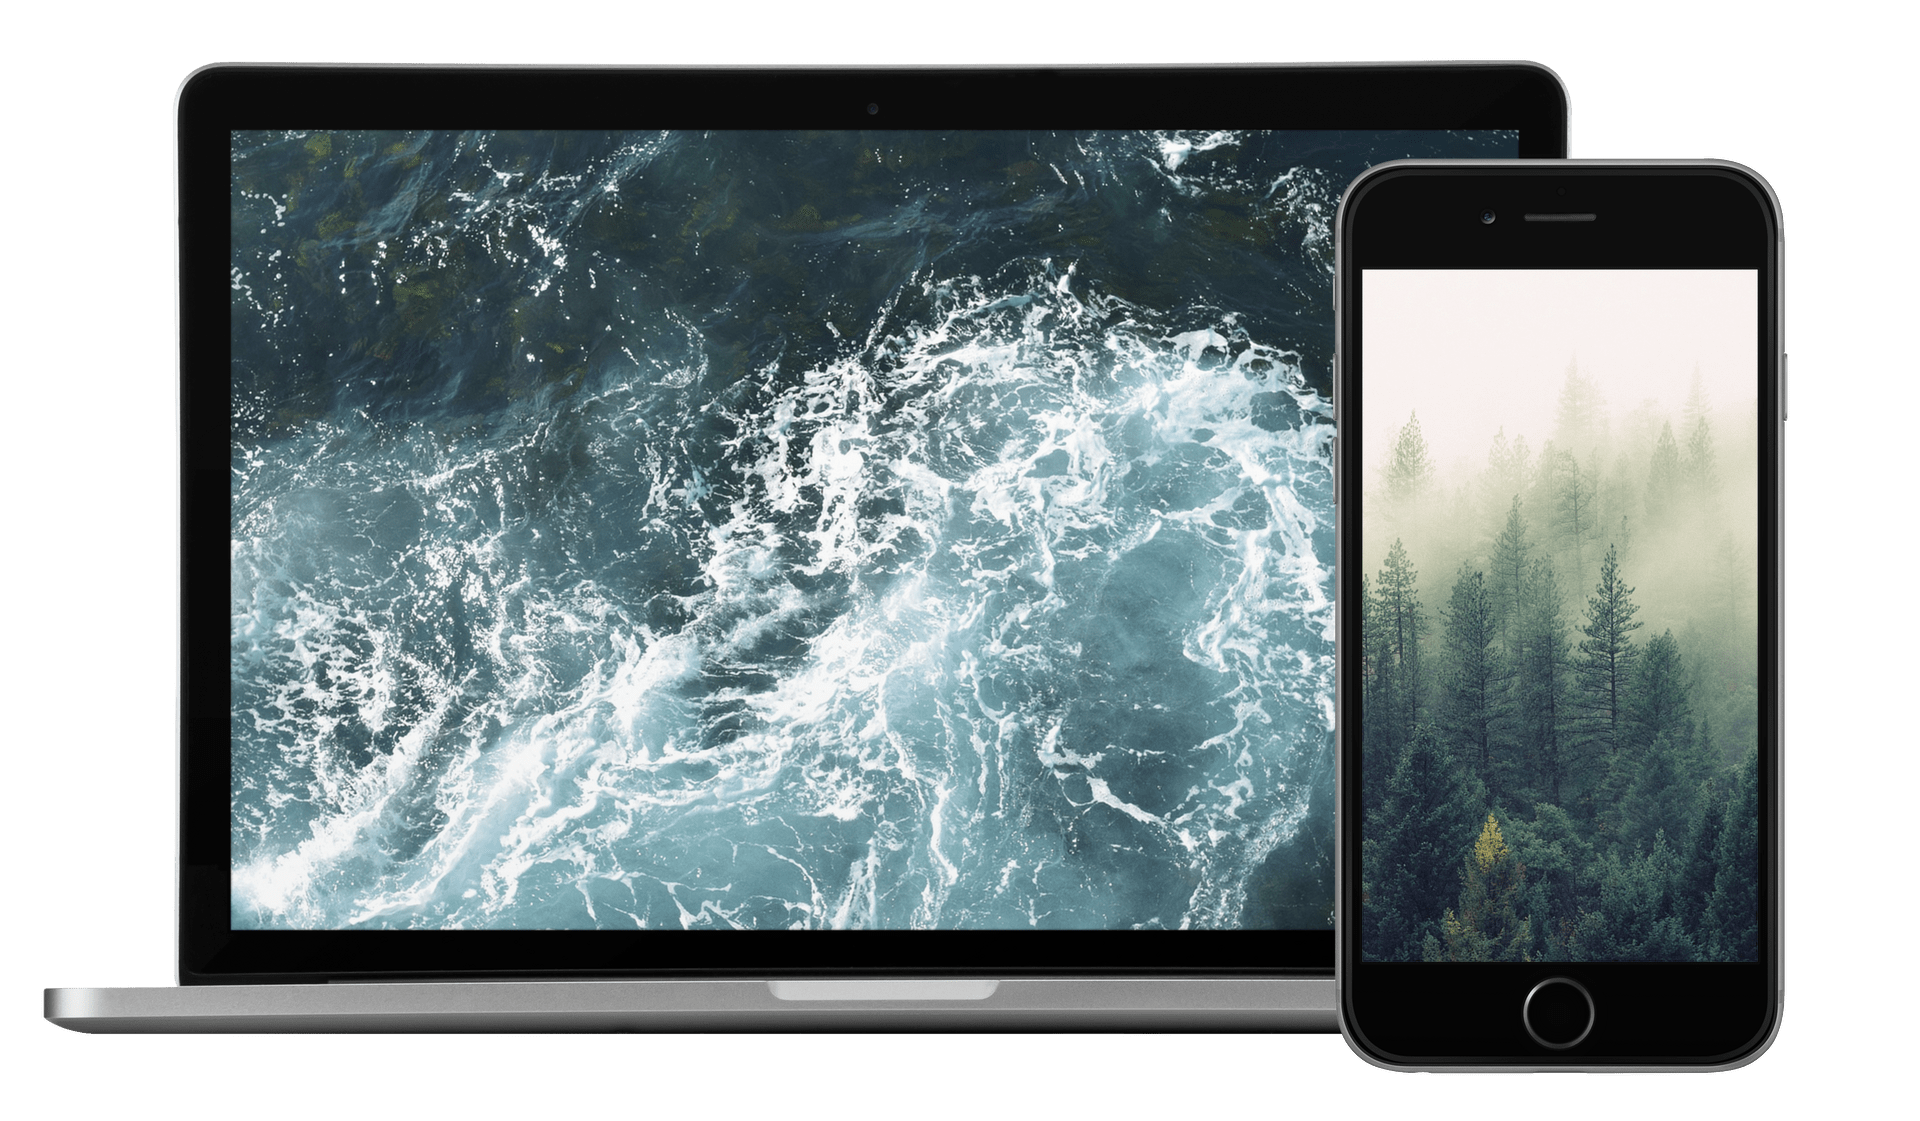 rugged outdoor wallpapers by nomad